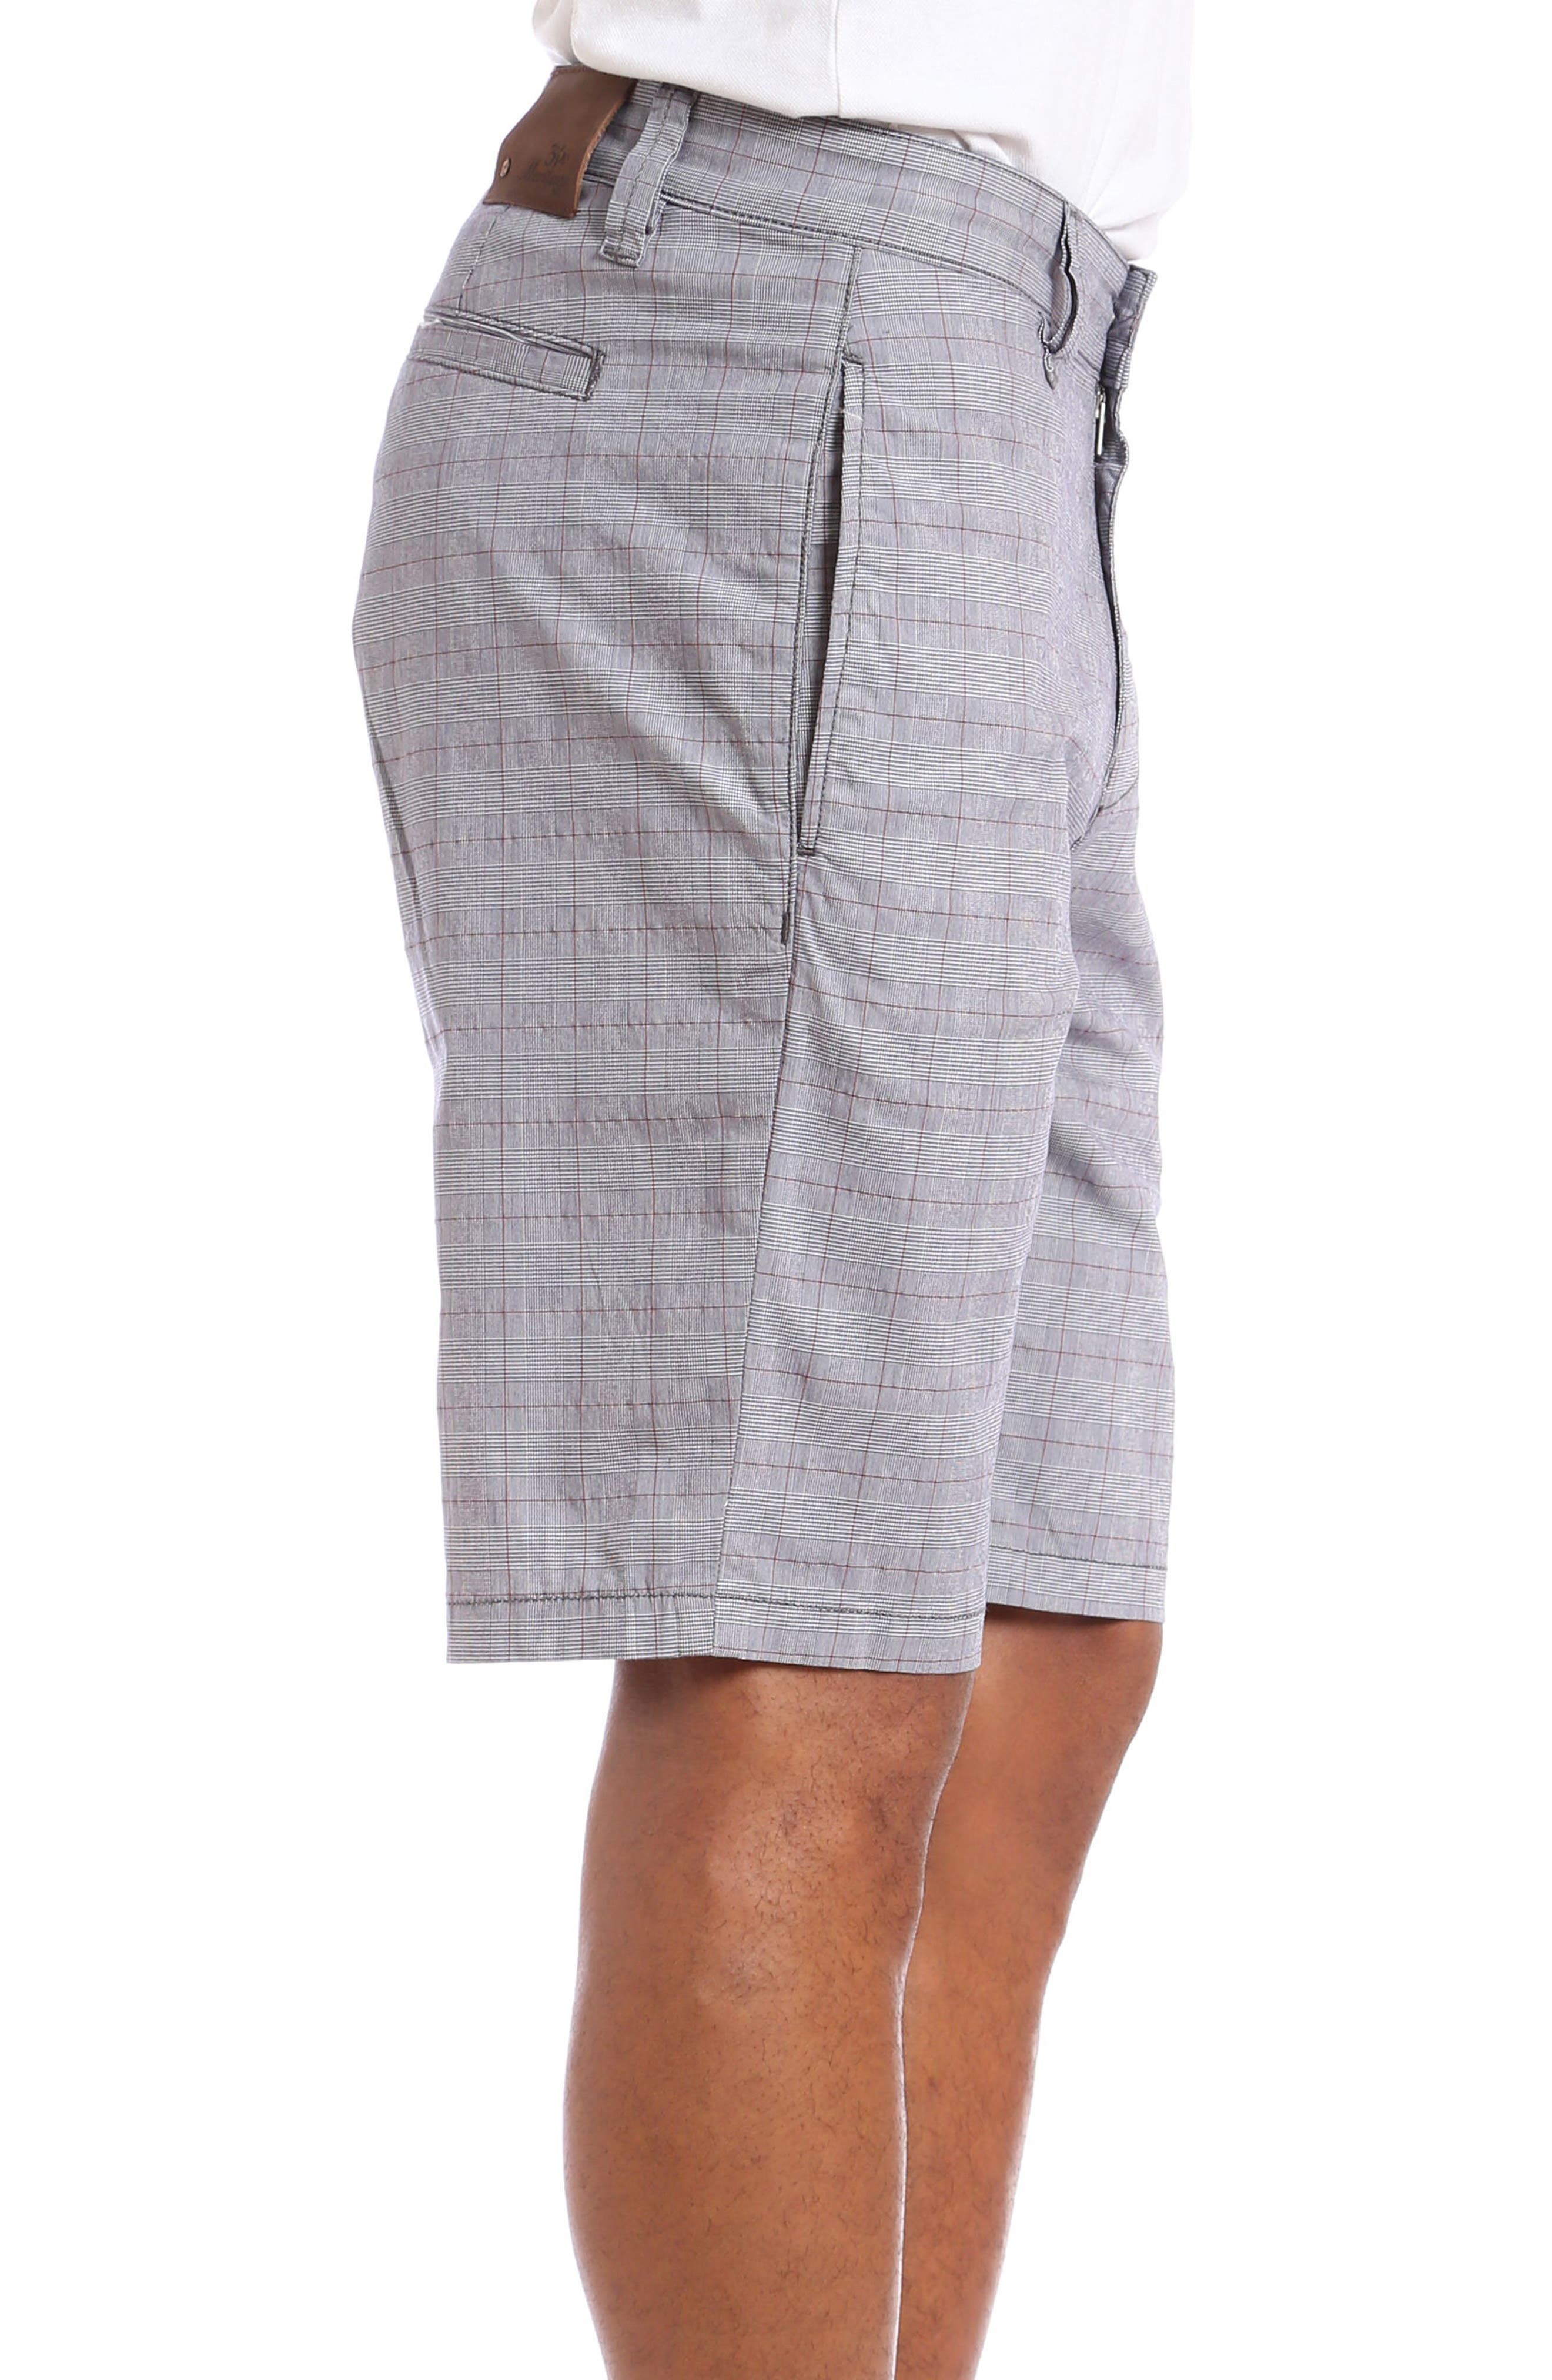 Nevada Twill Shorts,                             Alternate thumbnail 3, color,                             Grey Plaid